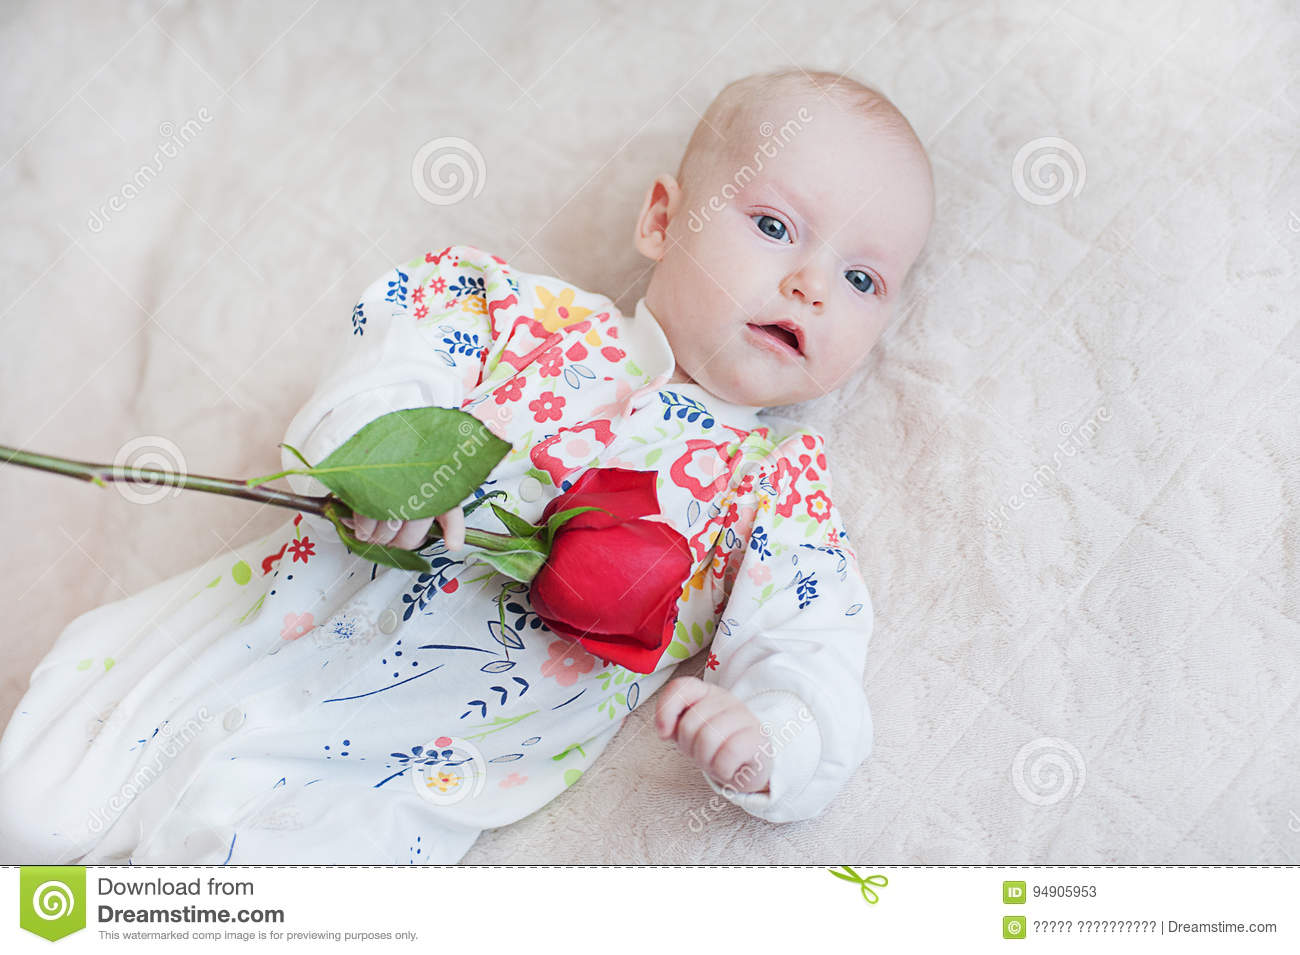 dab00579ae Royalty-Free Stock Photo. Cute baby girl holding a bouquet of flowers rose